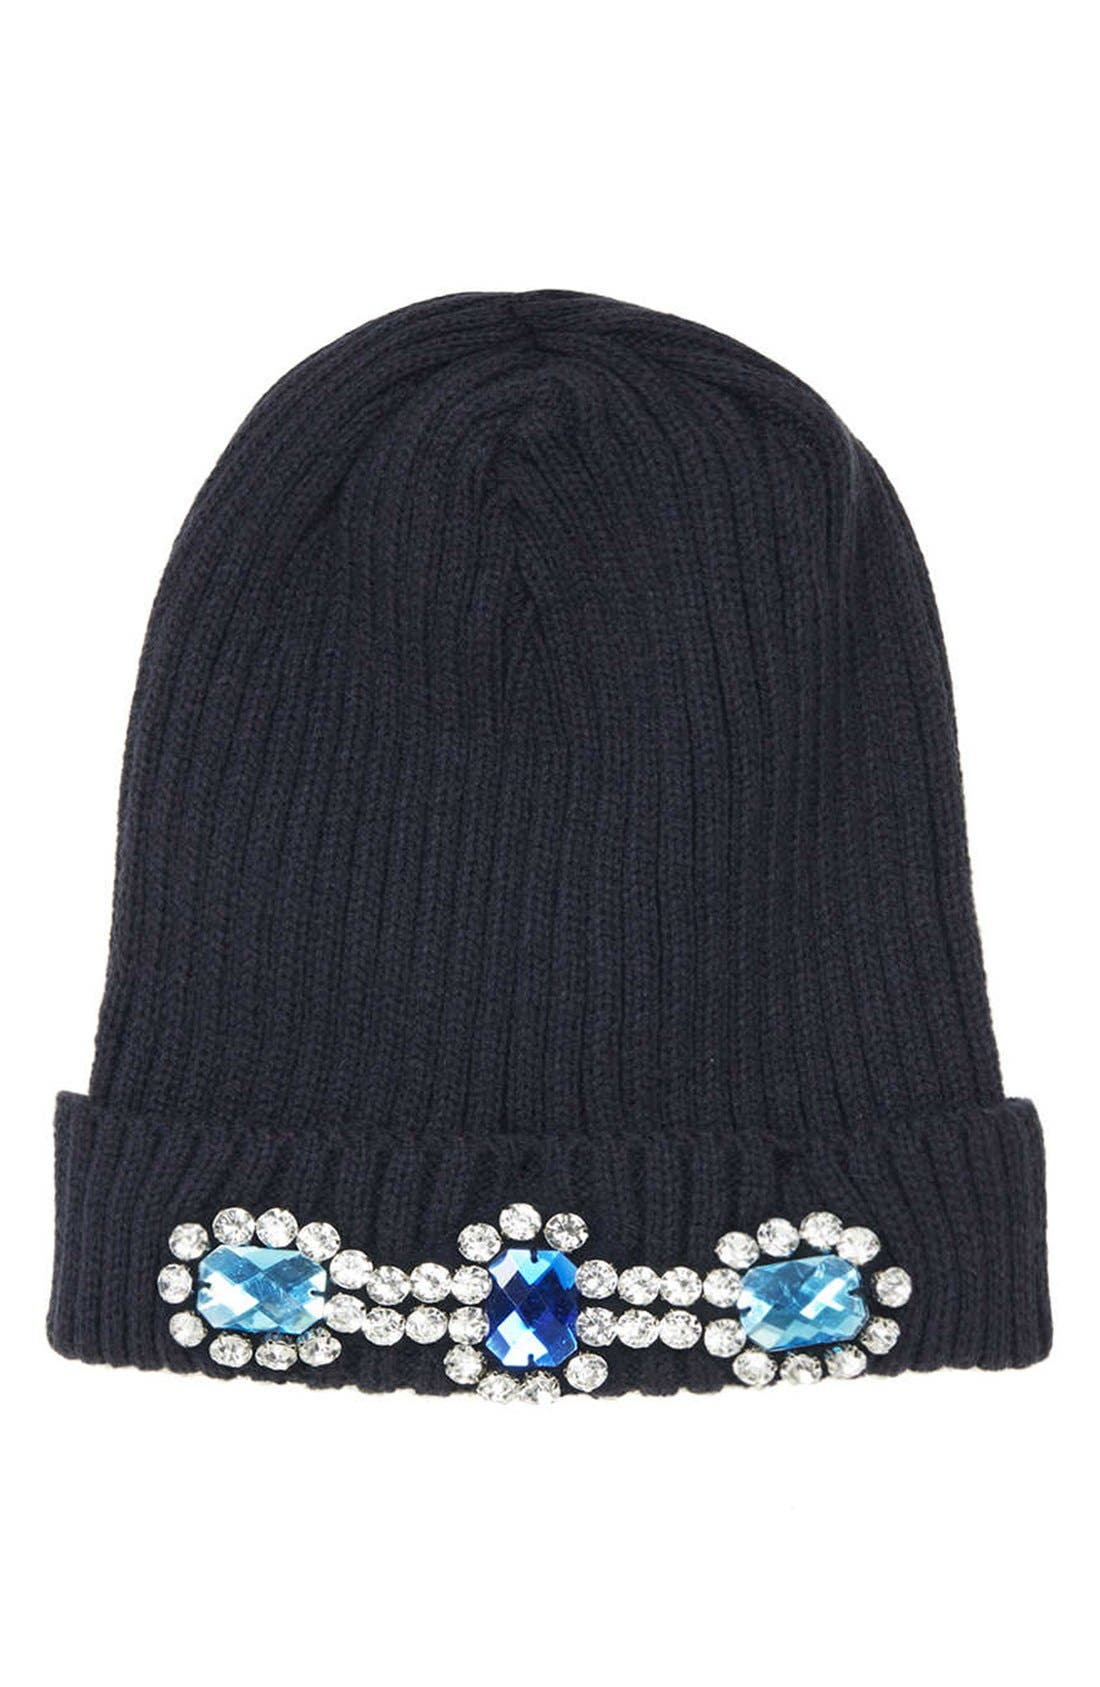 Alternate Image 1 Selected - Topshop Embellished Ribbed Beanie